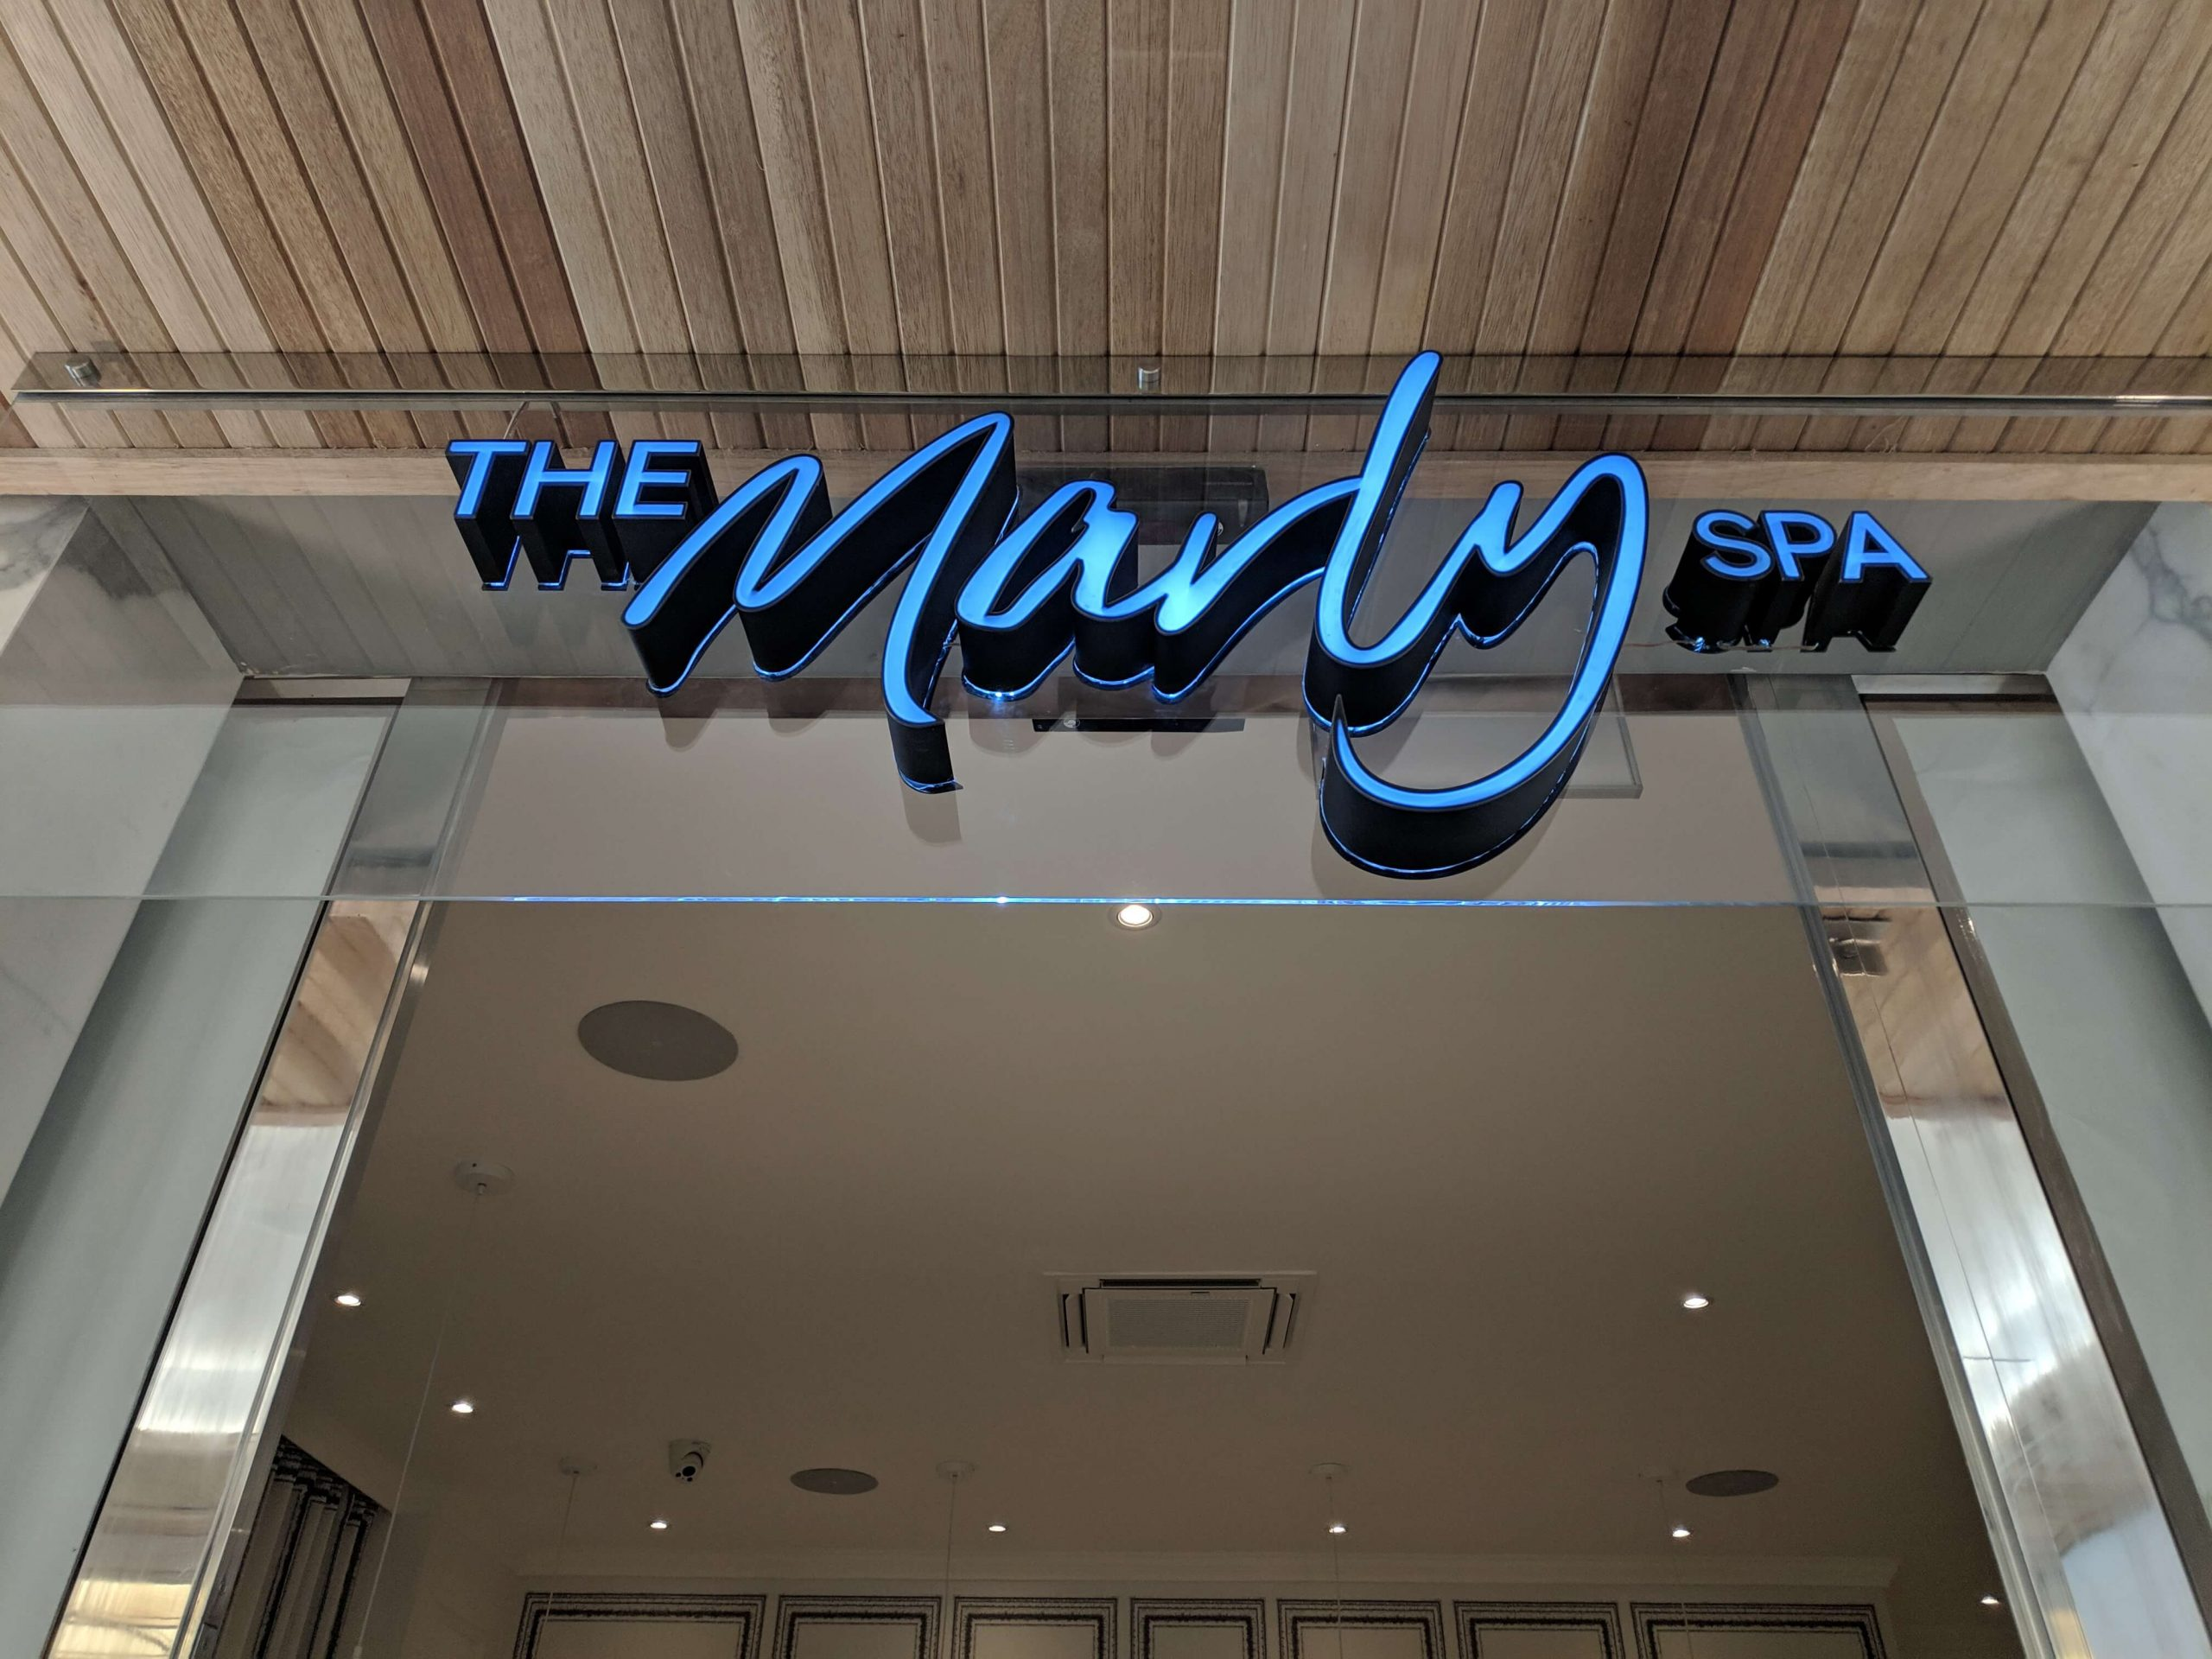 The-Marly-Spa-0